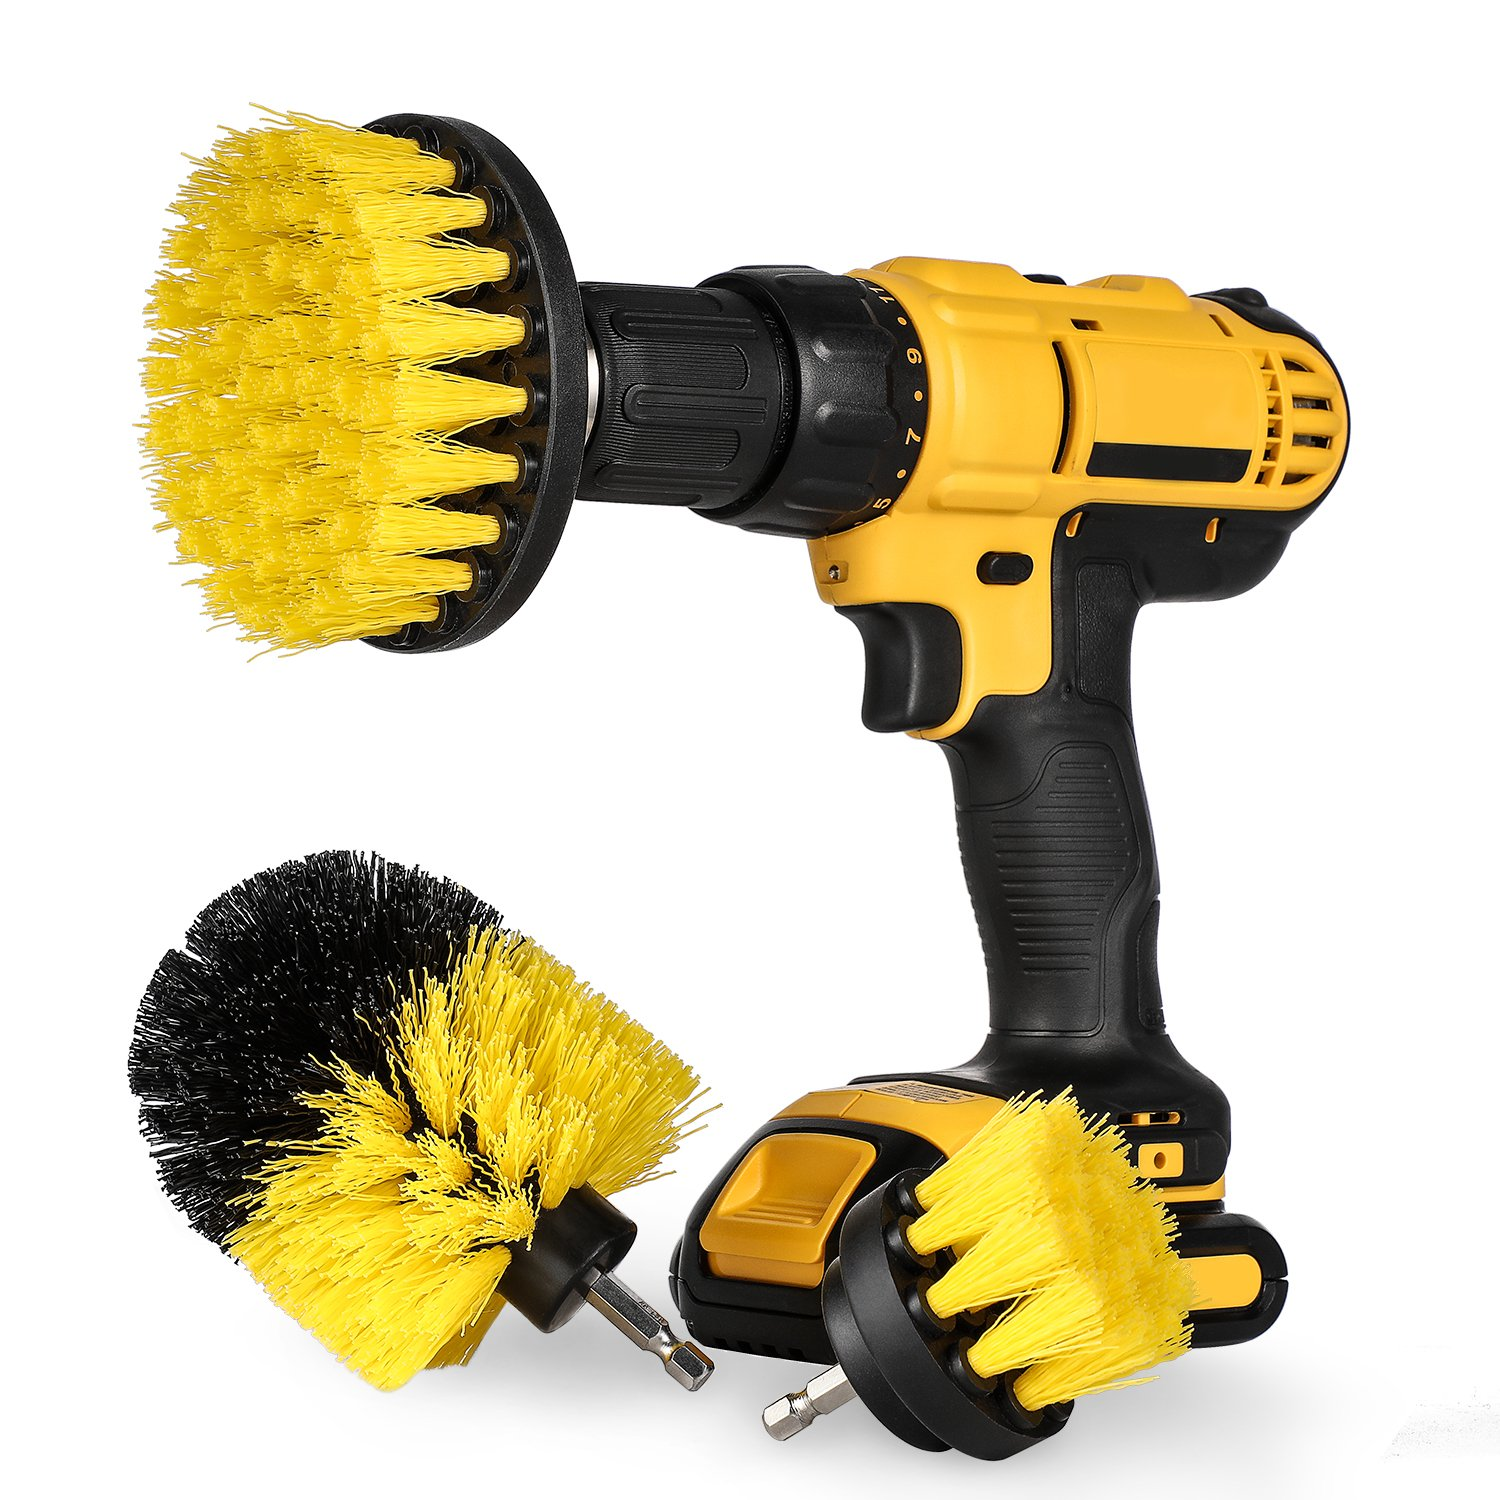 Drill Brush Attachment Set - Power Scrubber Brush Cleaning Kit - All Purpose Drill Brush for Bathroom Surfaces, Grout, Floor, Tub, Shower, Tile, Corners, Kitchen, Automotive, Grill - Fits Most Drills Hiware